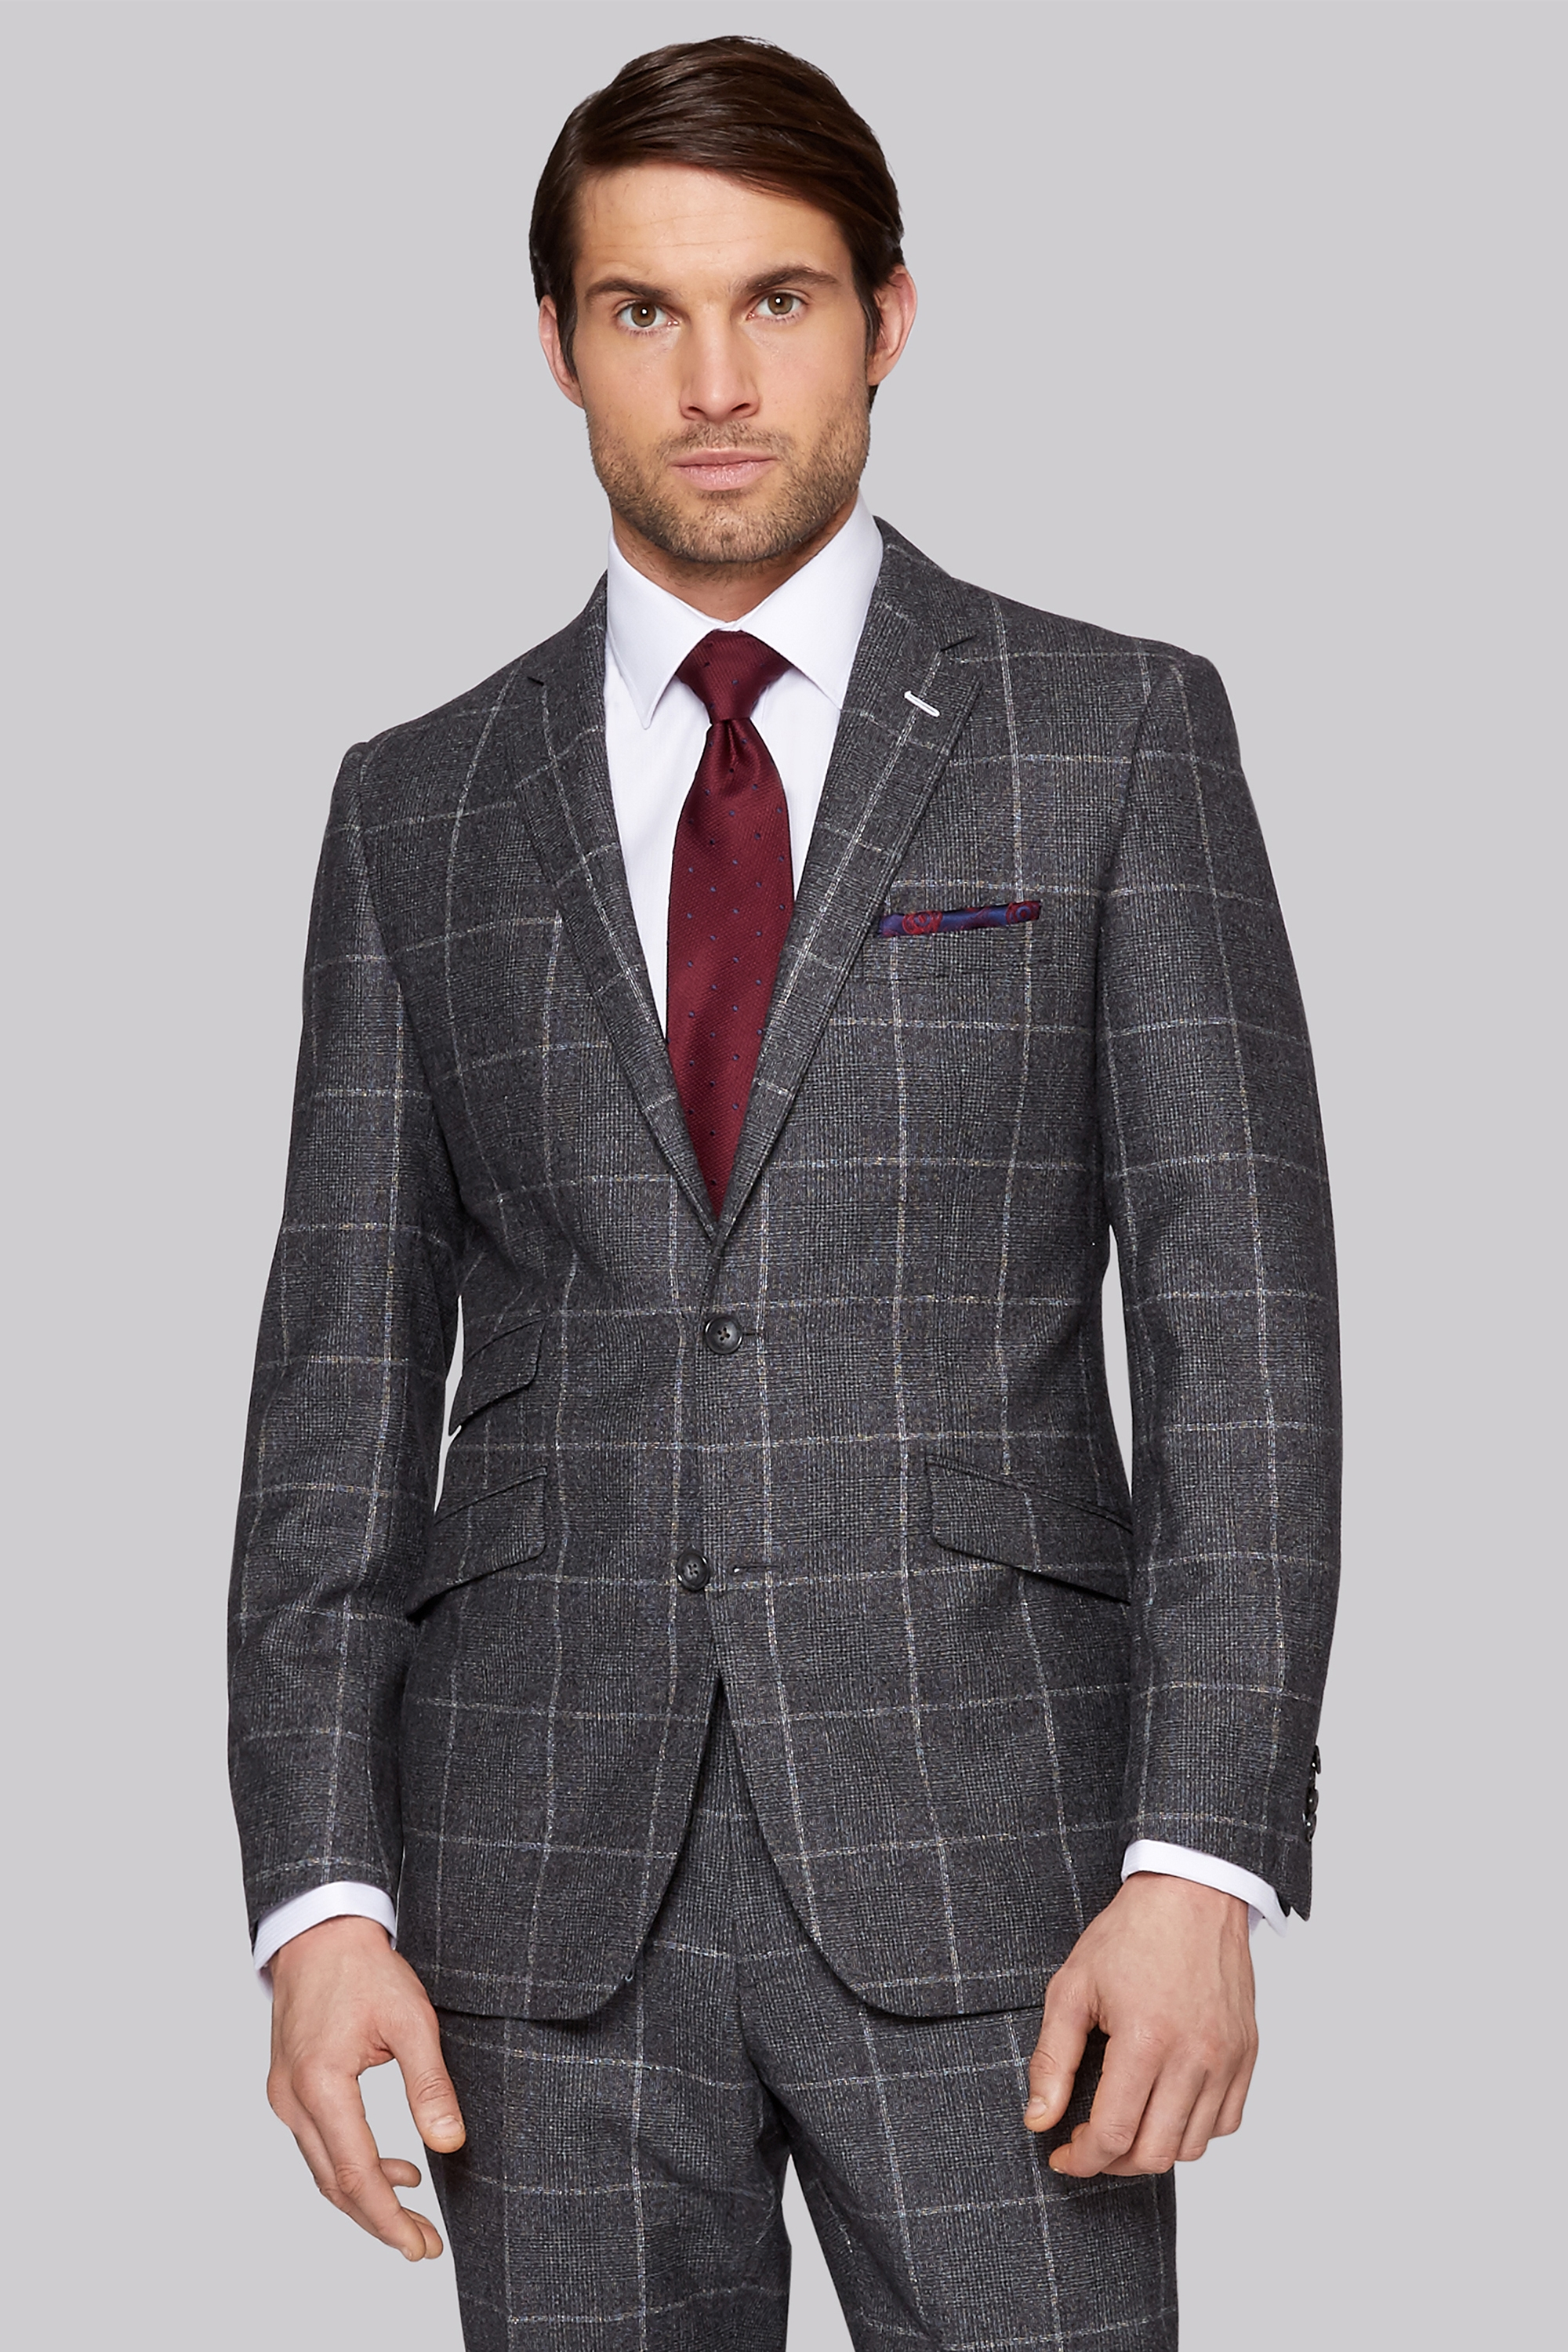 Bros Tailored Fit Grey Windowpane Check Suit